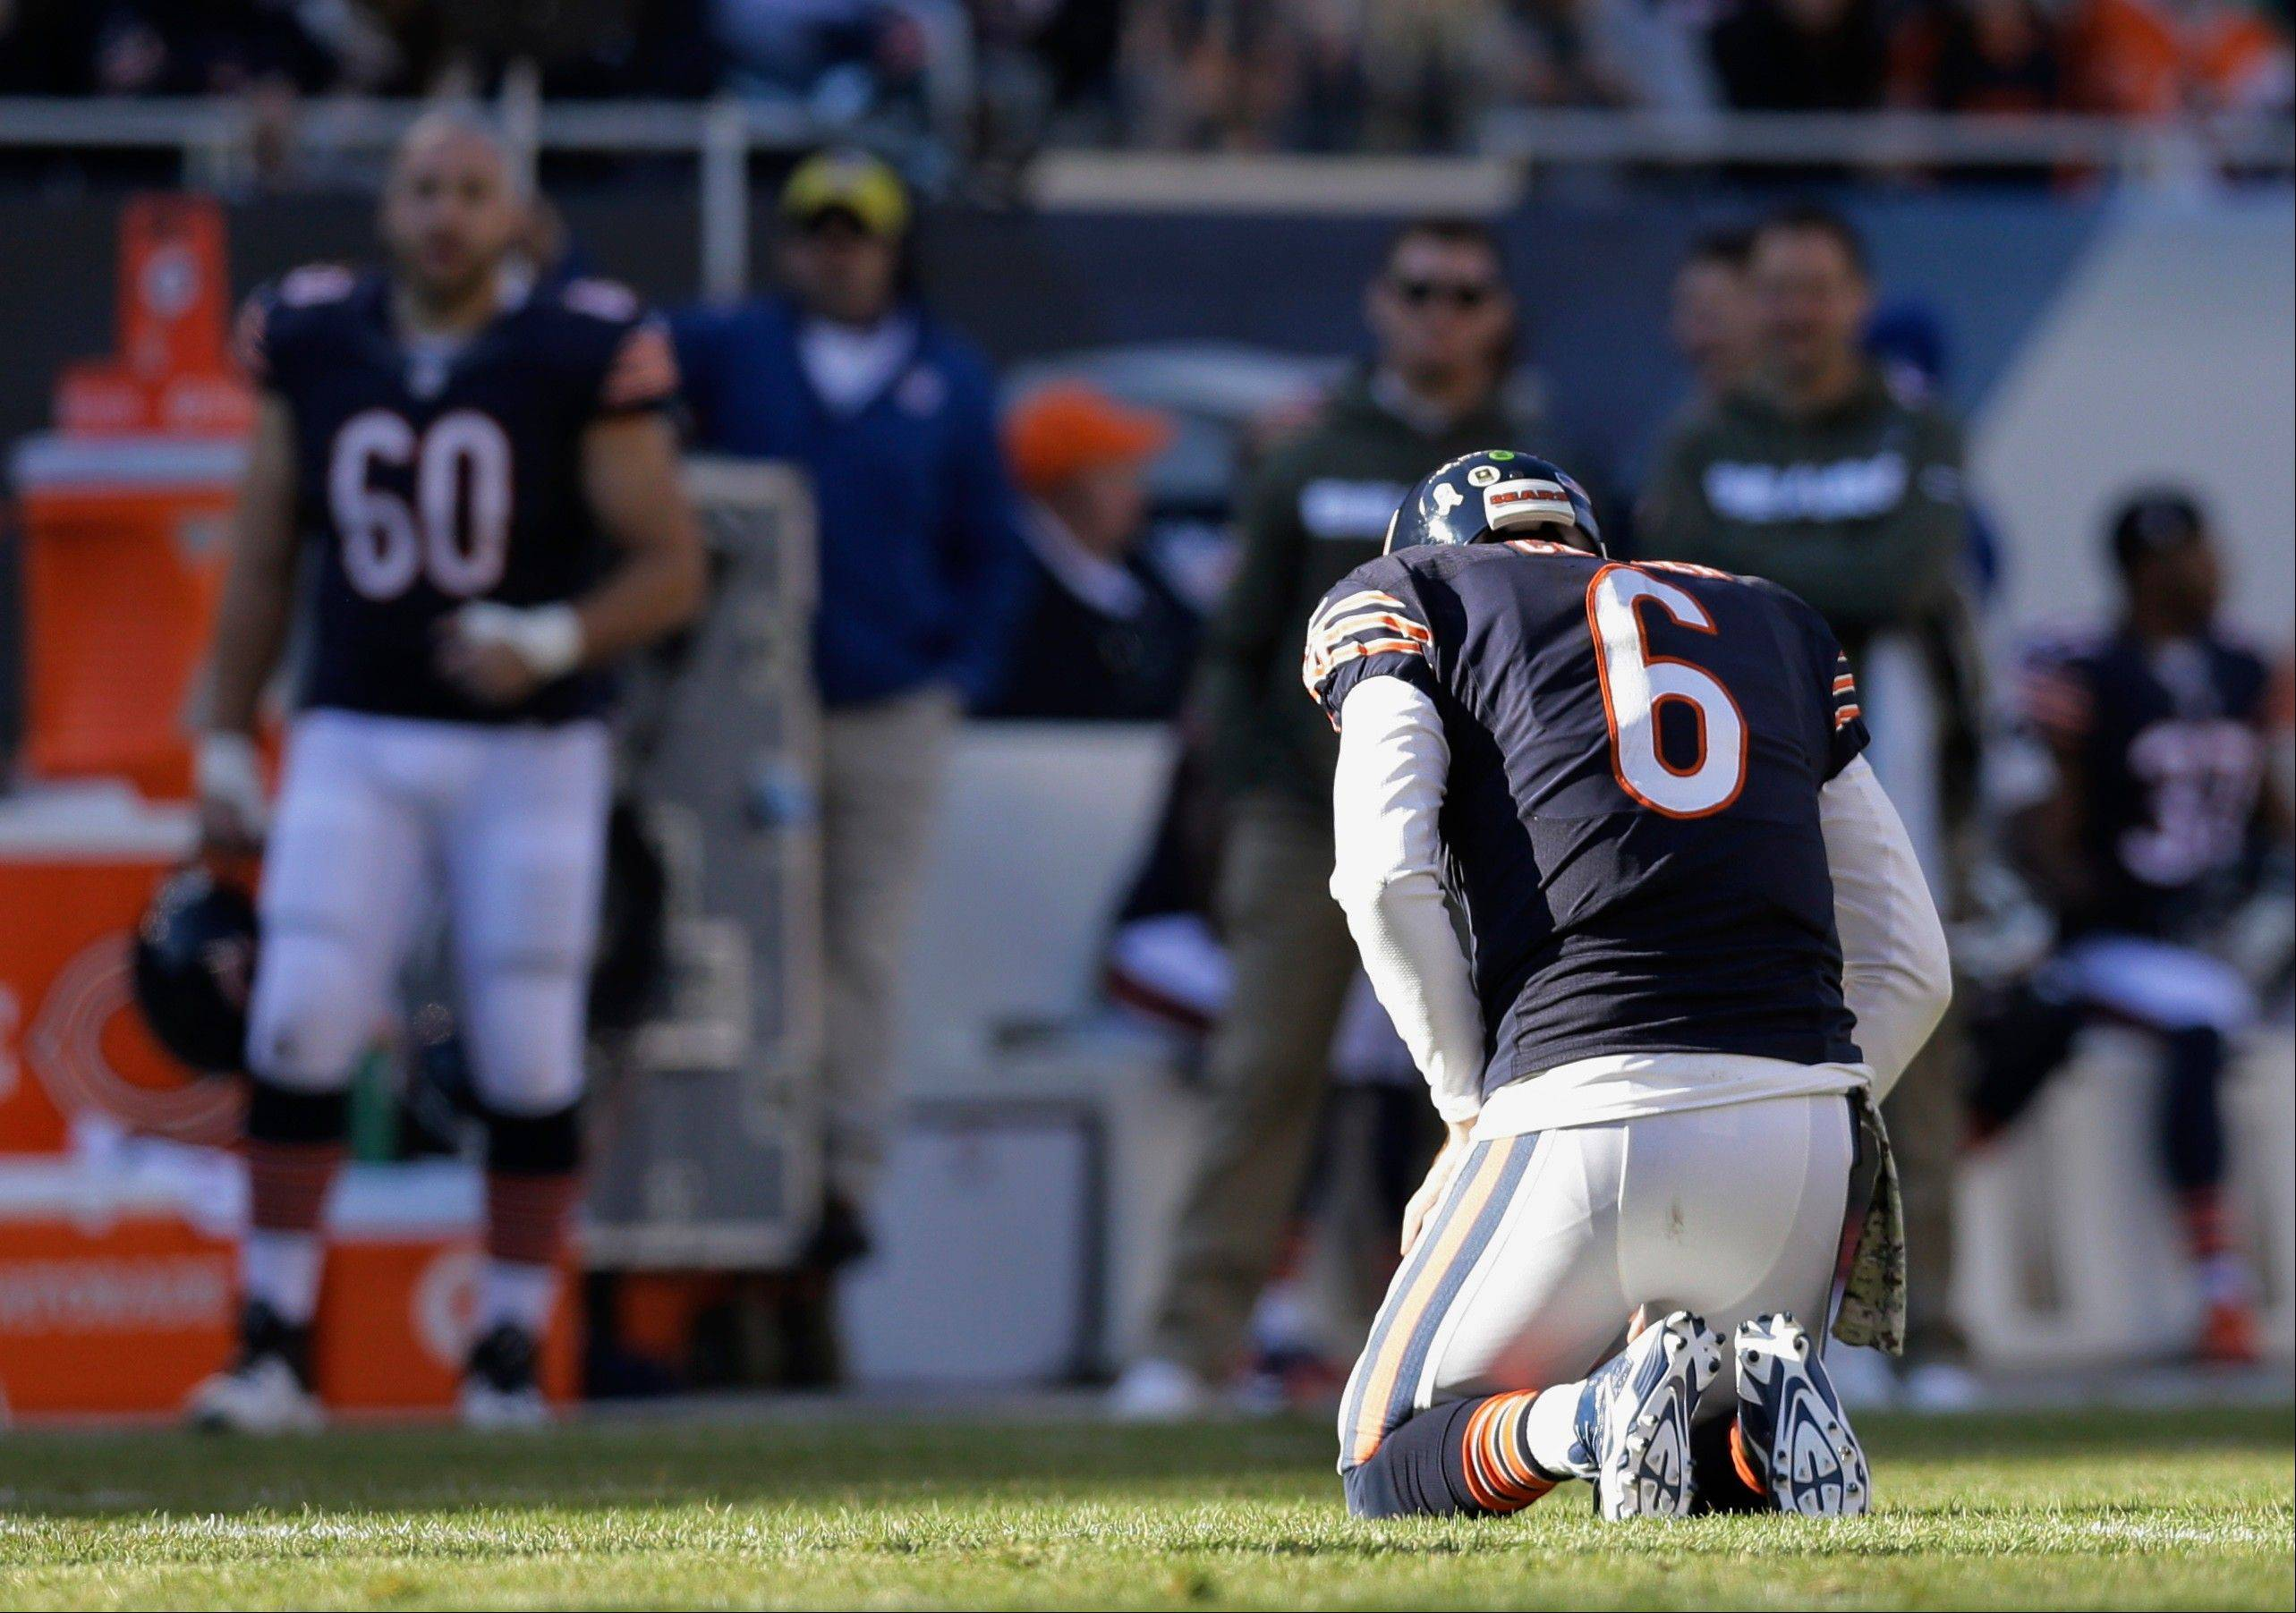 Bears quarterback Jay Cutler kneels on the field after a play during the second half of an NFL football game against the Detroit Lions, Sunday, Nov. 10, 2013, at Soldier Field.